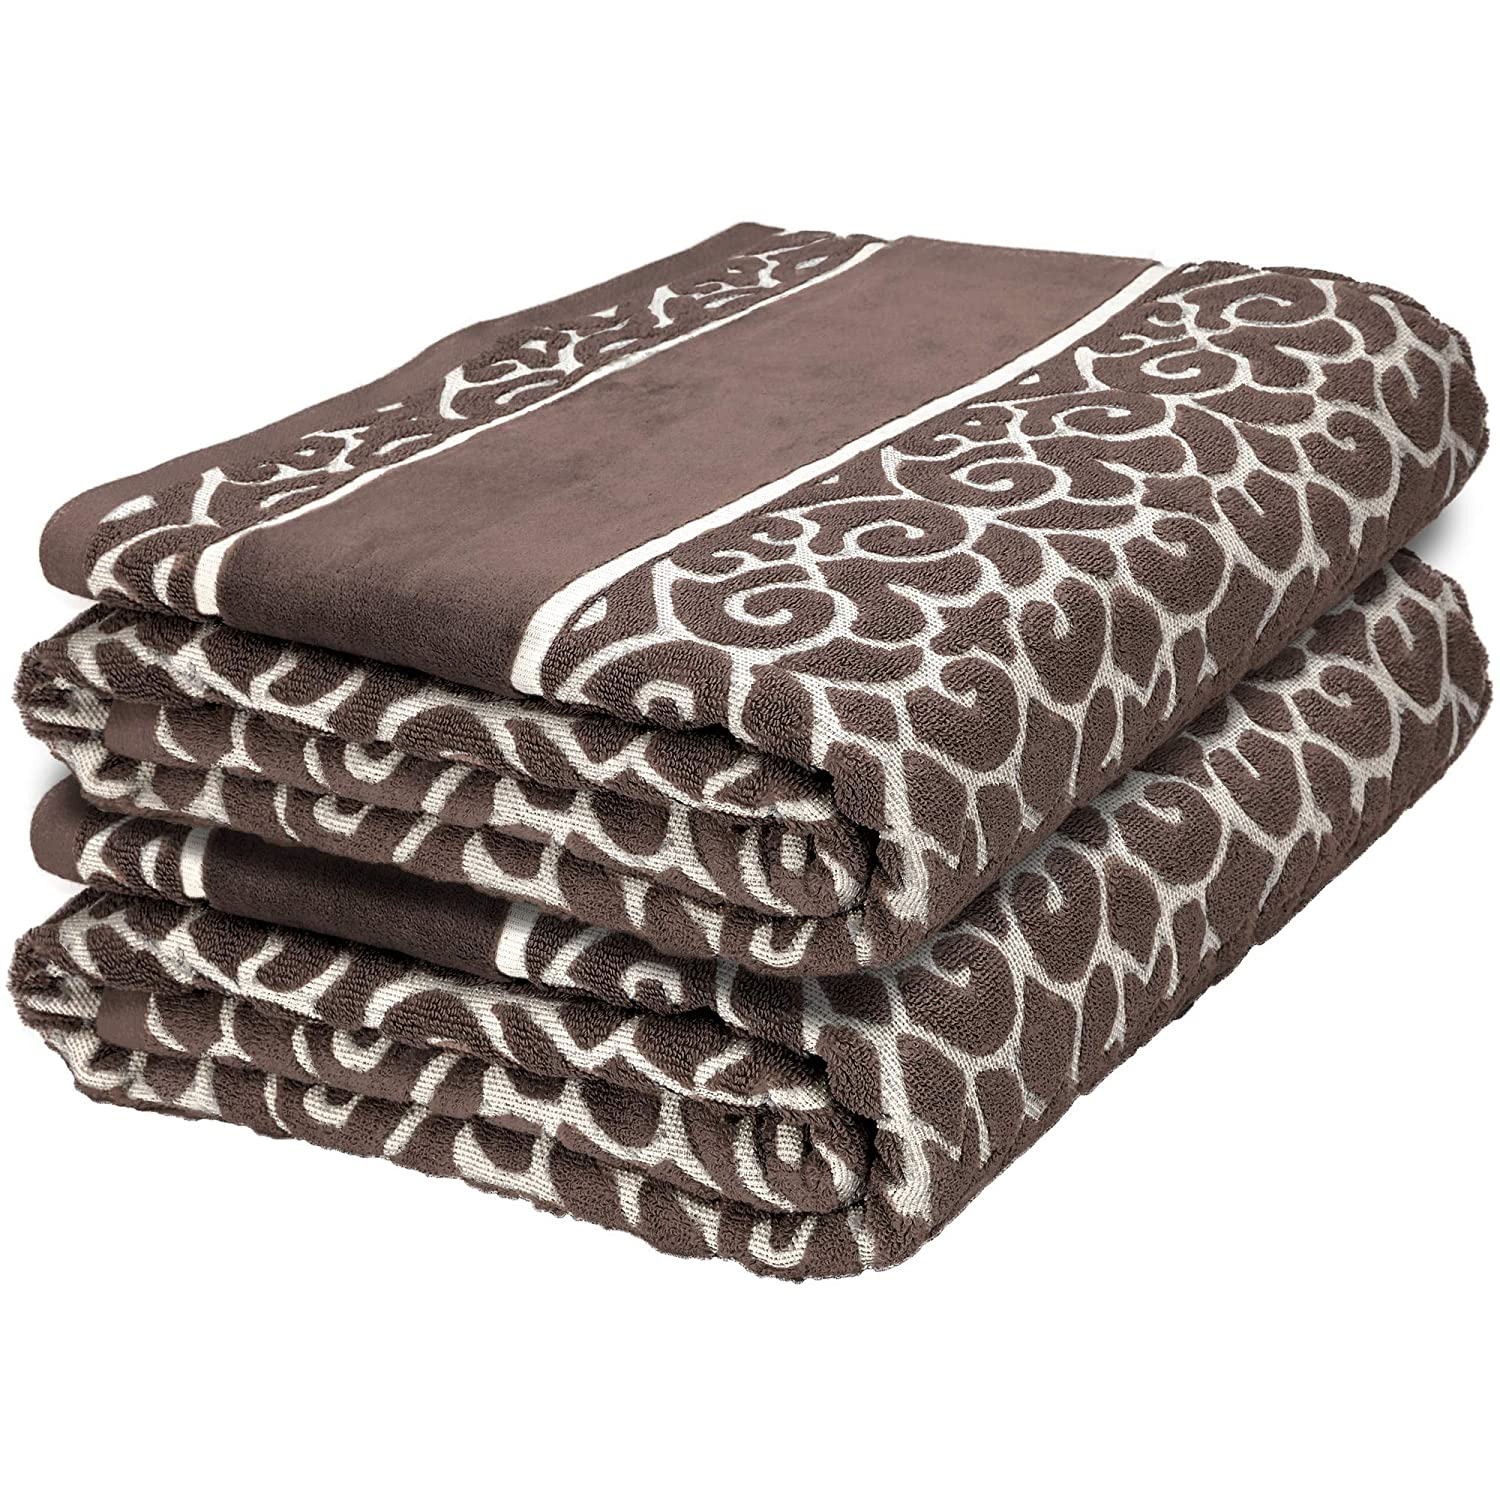 Soft Textilz - Luxury Guest Towels